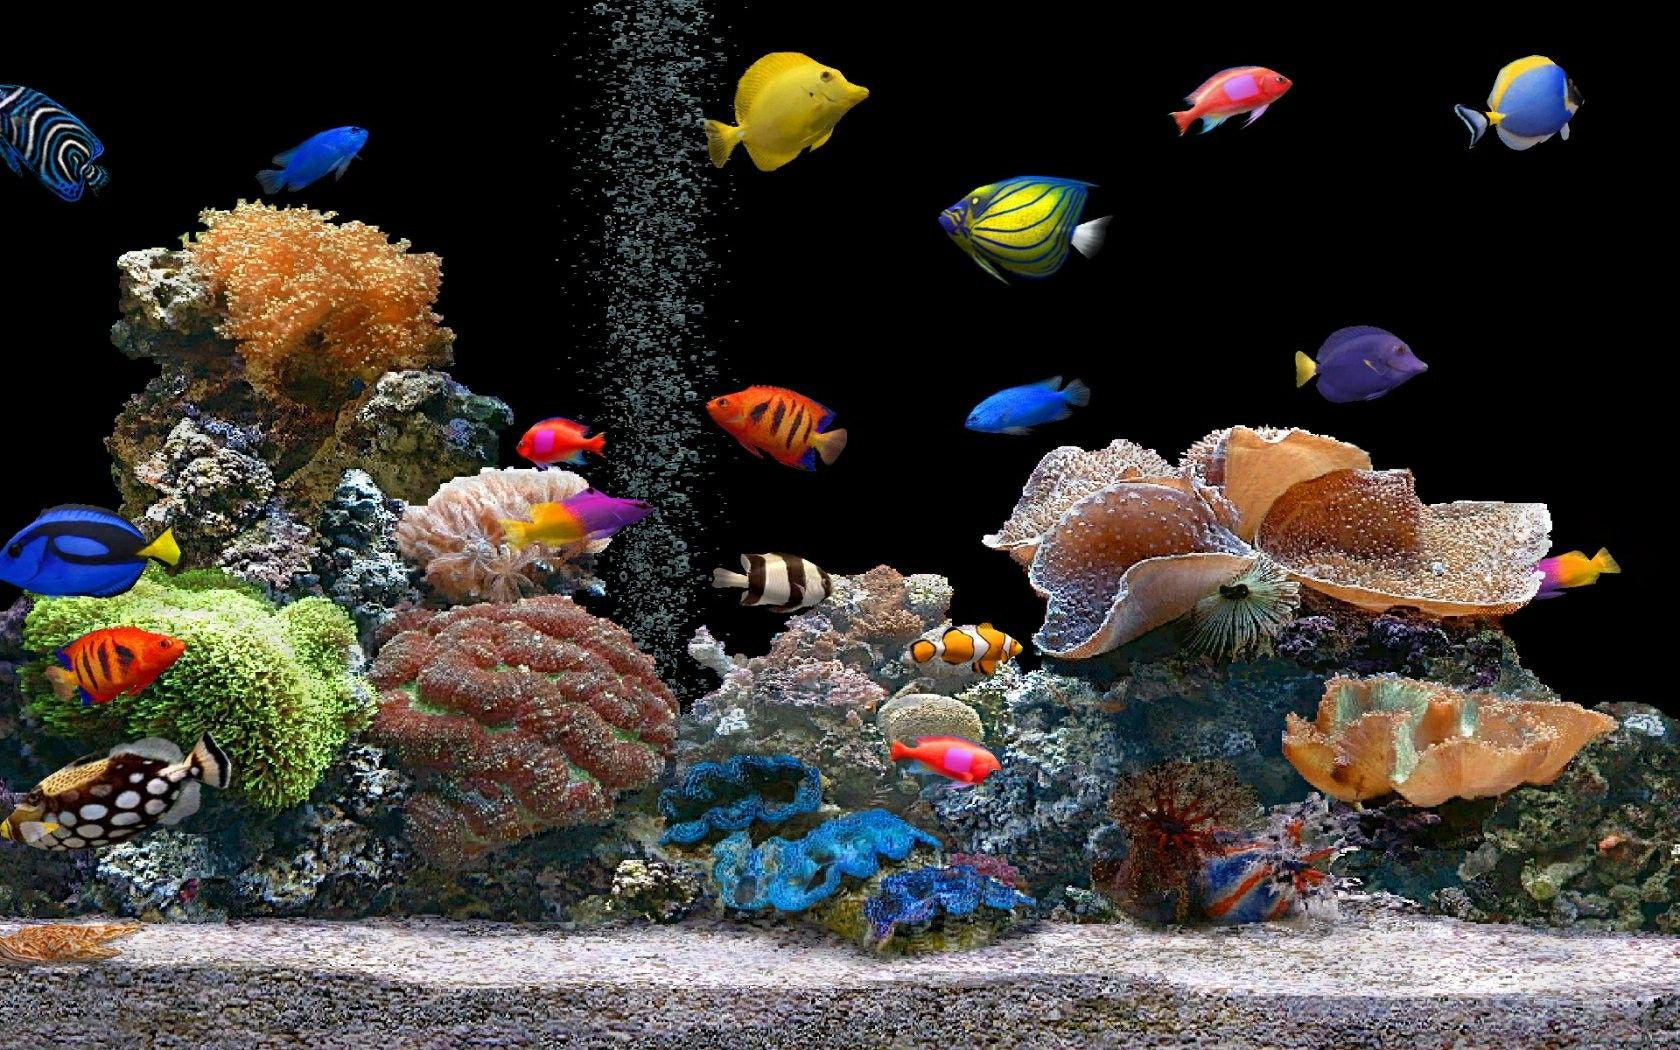 Download Live Hd Wallpaper Fish Aquarium 3d Desktop Aquarium 3d Fish Wallpaper Aquarium Live Wallpaper Saltwater Fish Tanks